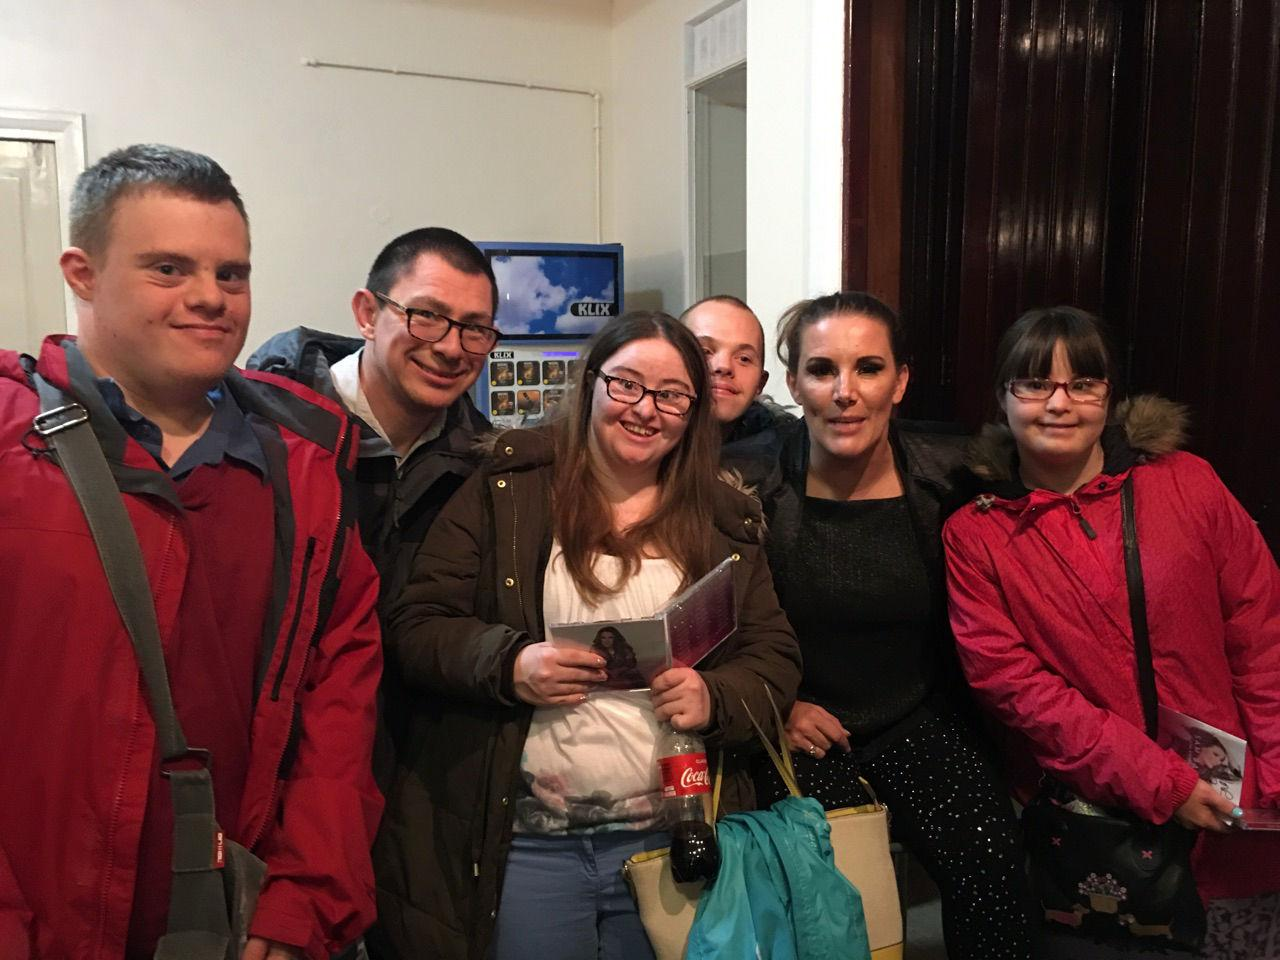 Paul, Nick, Hilly, Sam and Megan with Sam Bailey.